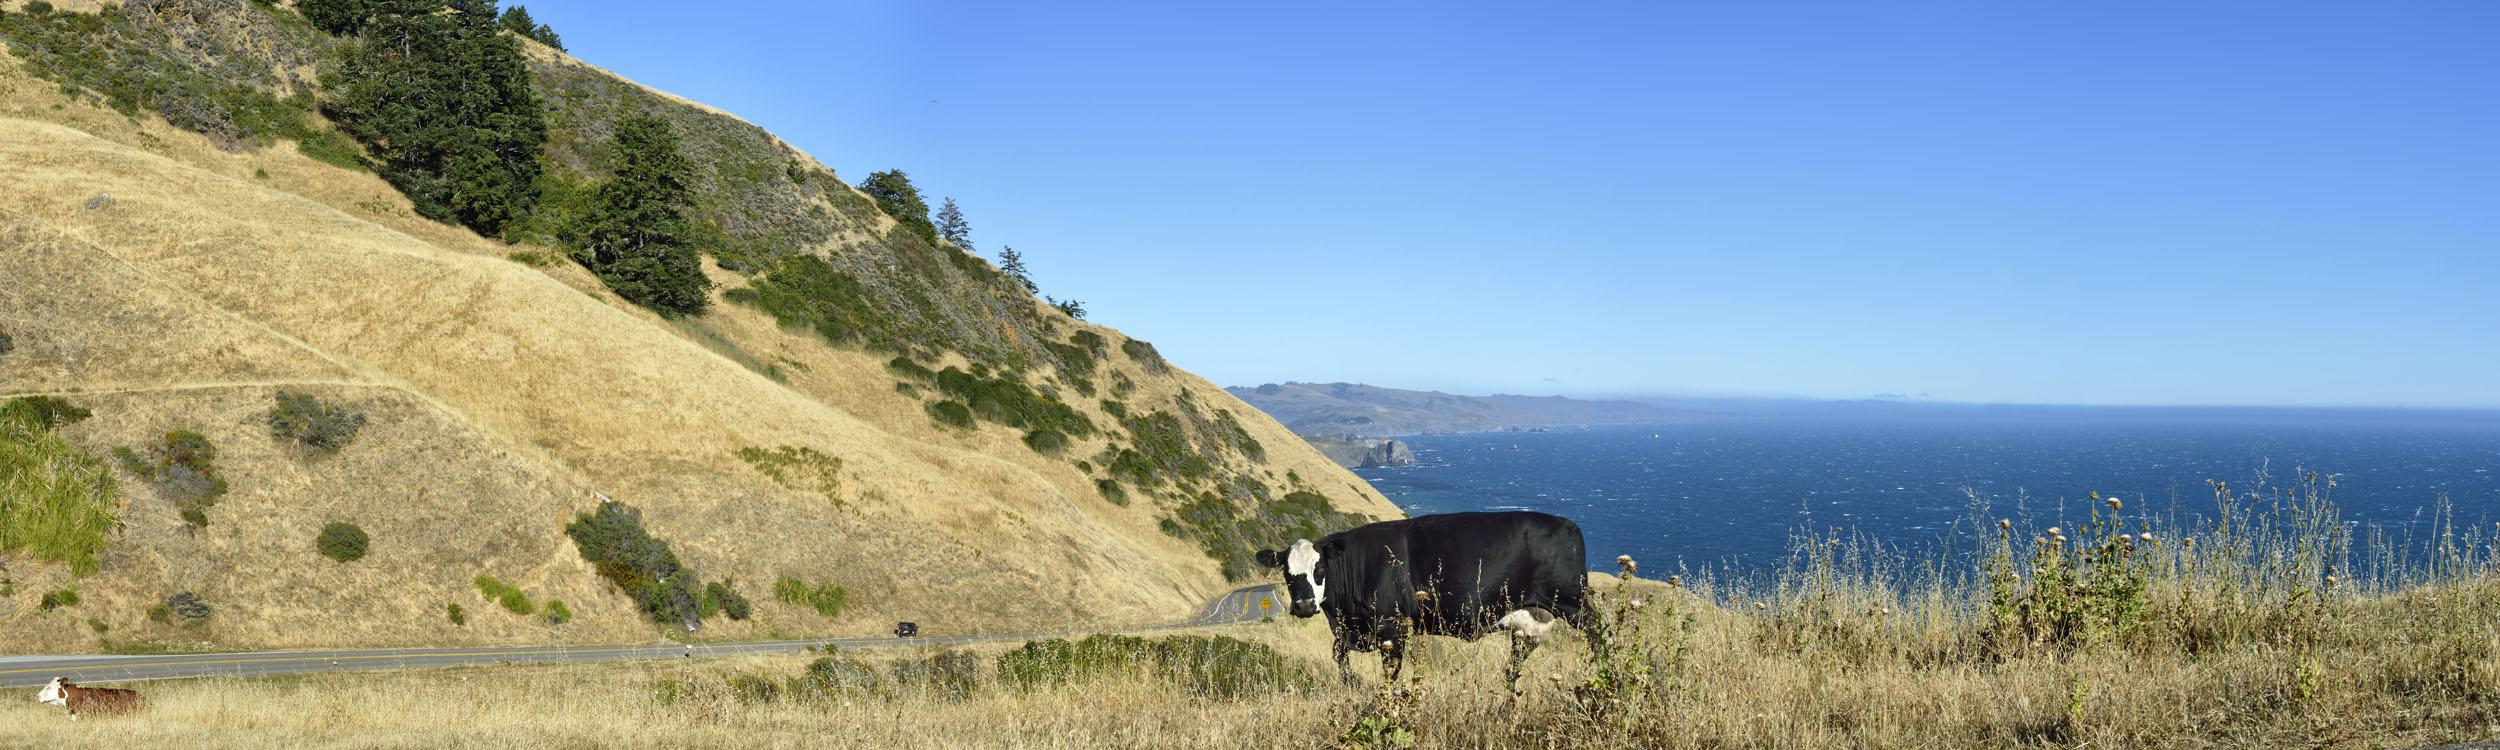 Cows along Coastal Highway, CA